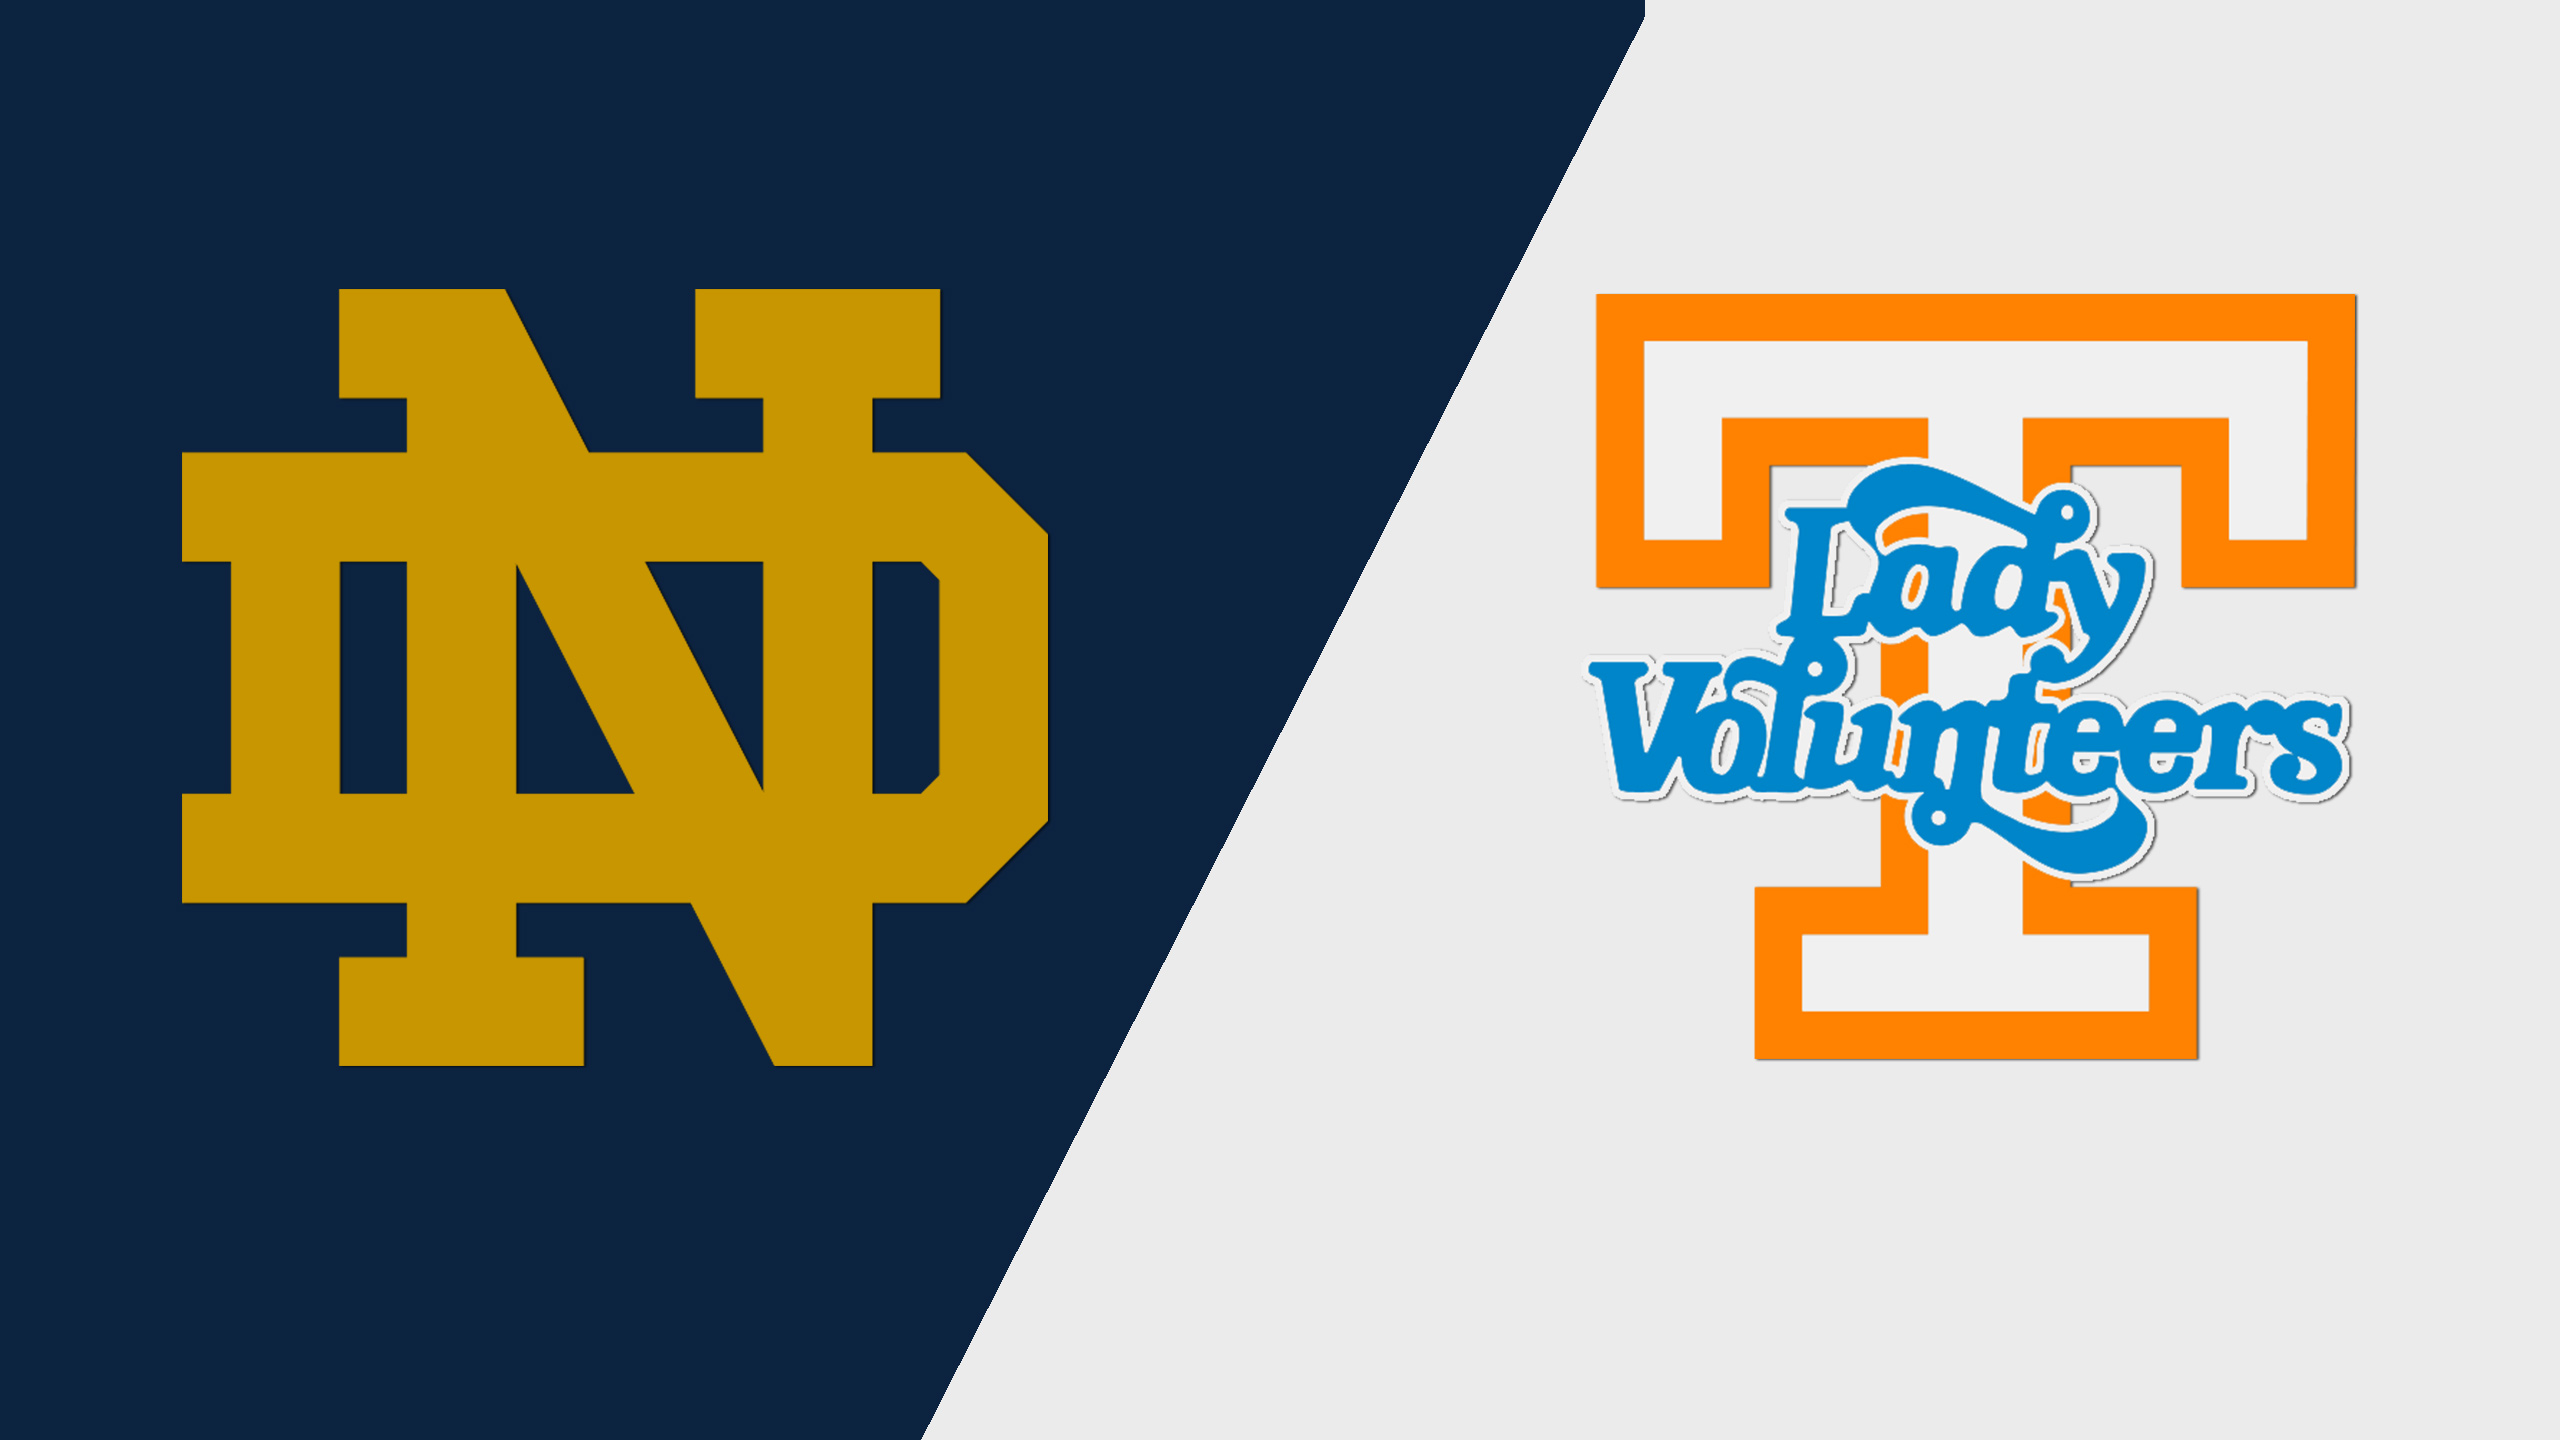 #1 Notre Dame vs. #20 Tennessee